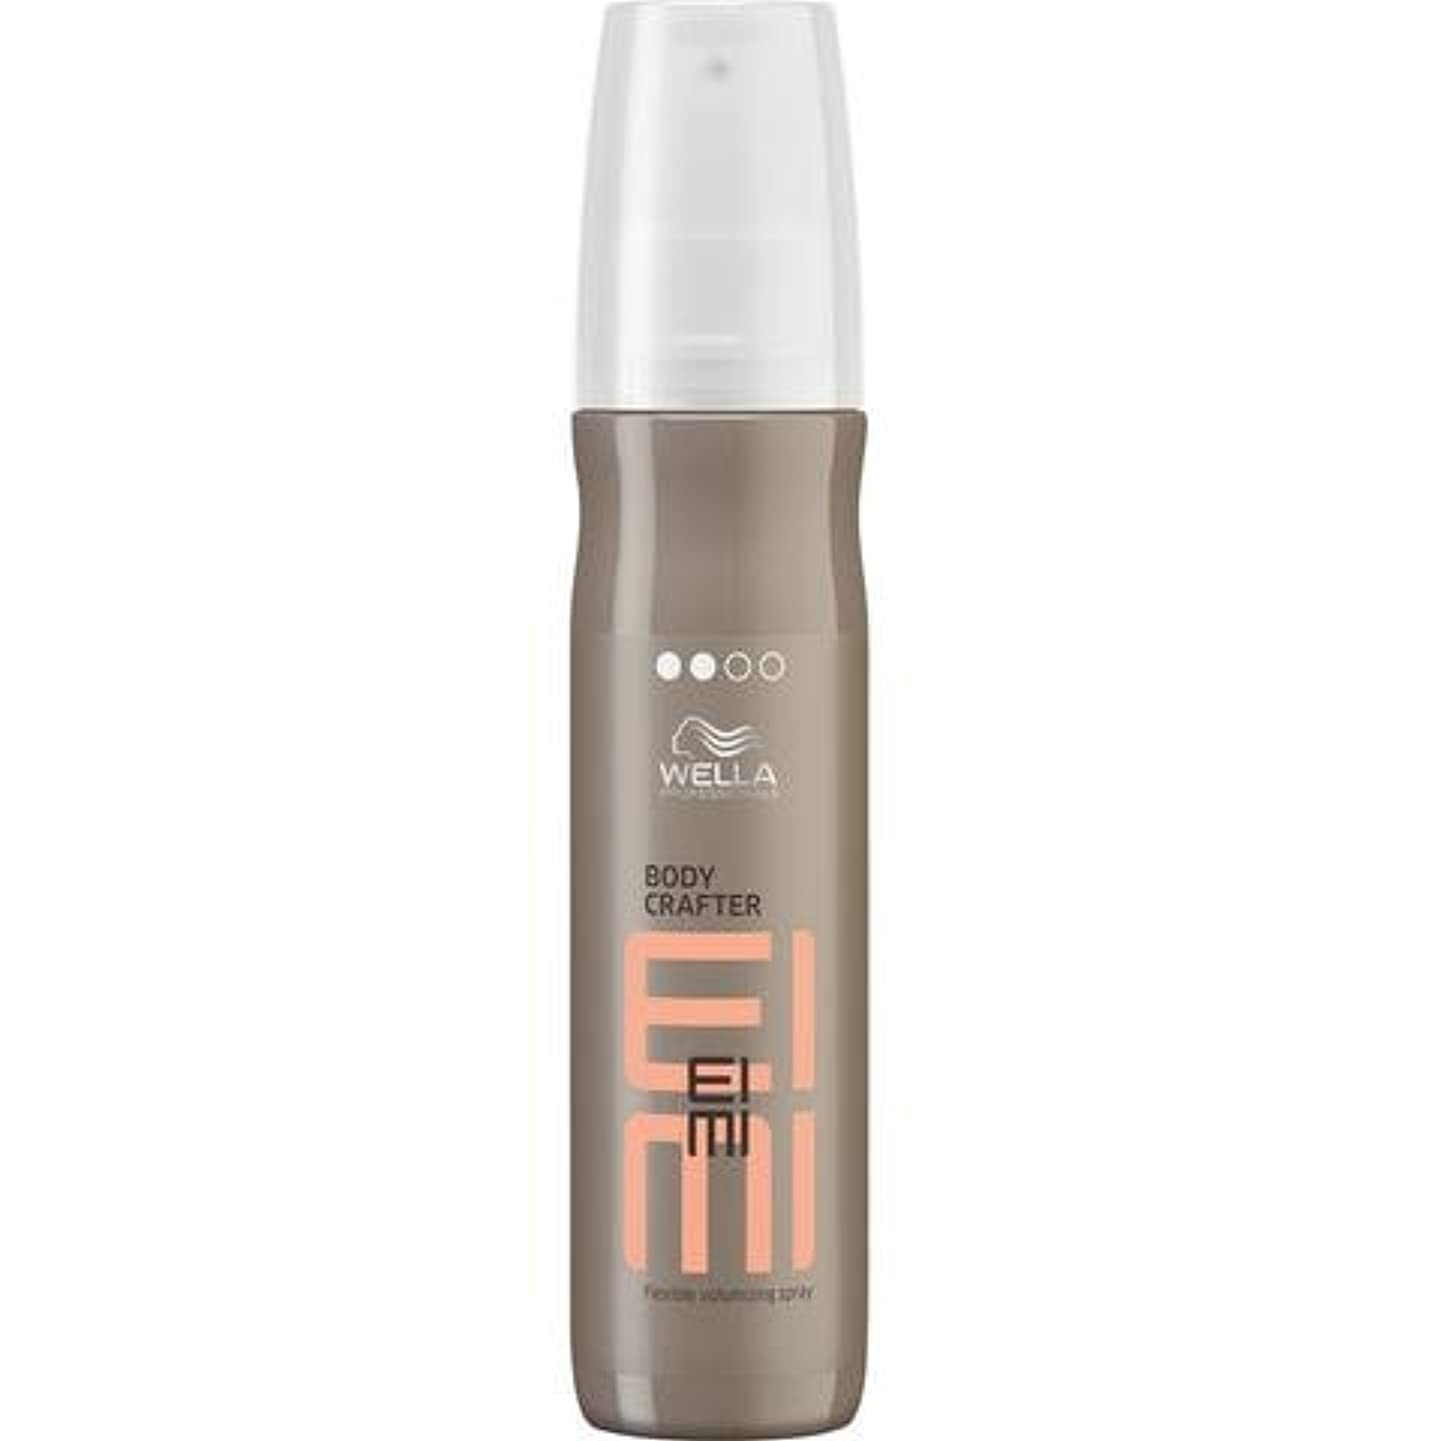 確認する解読するレースWella EIMI Body Crafter Flexible Volumising Spray 150 ml [並行輸入品]